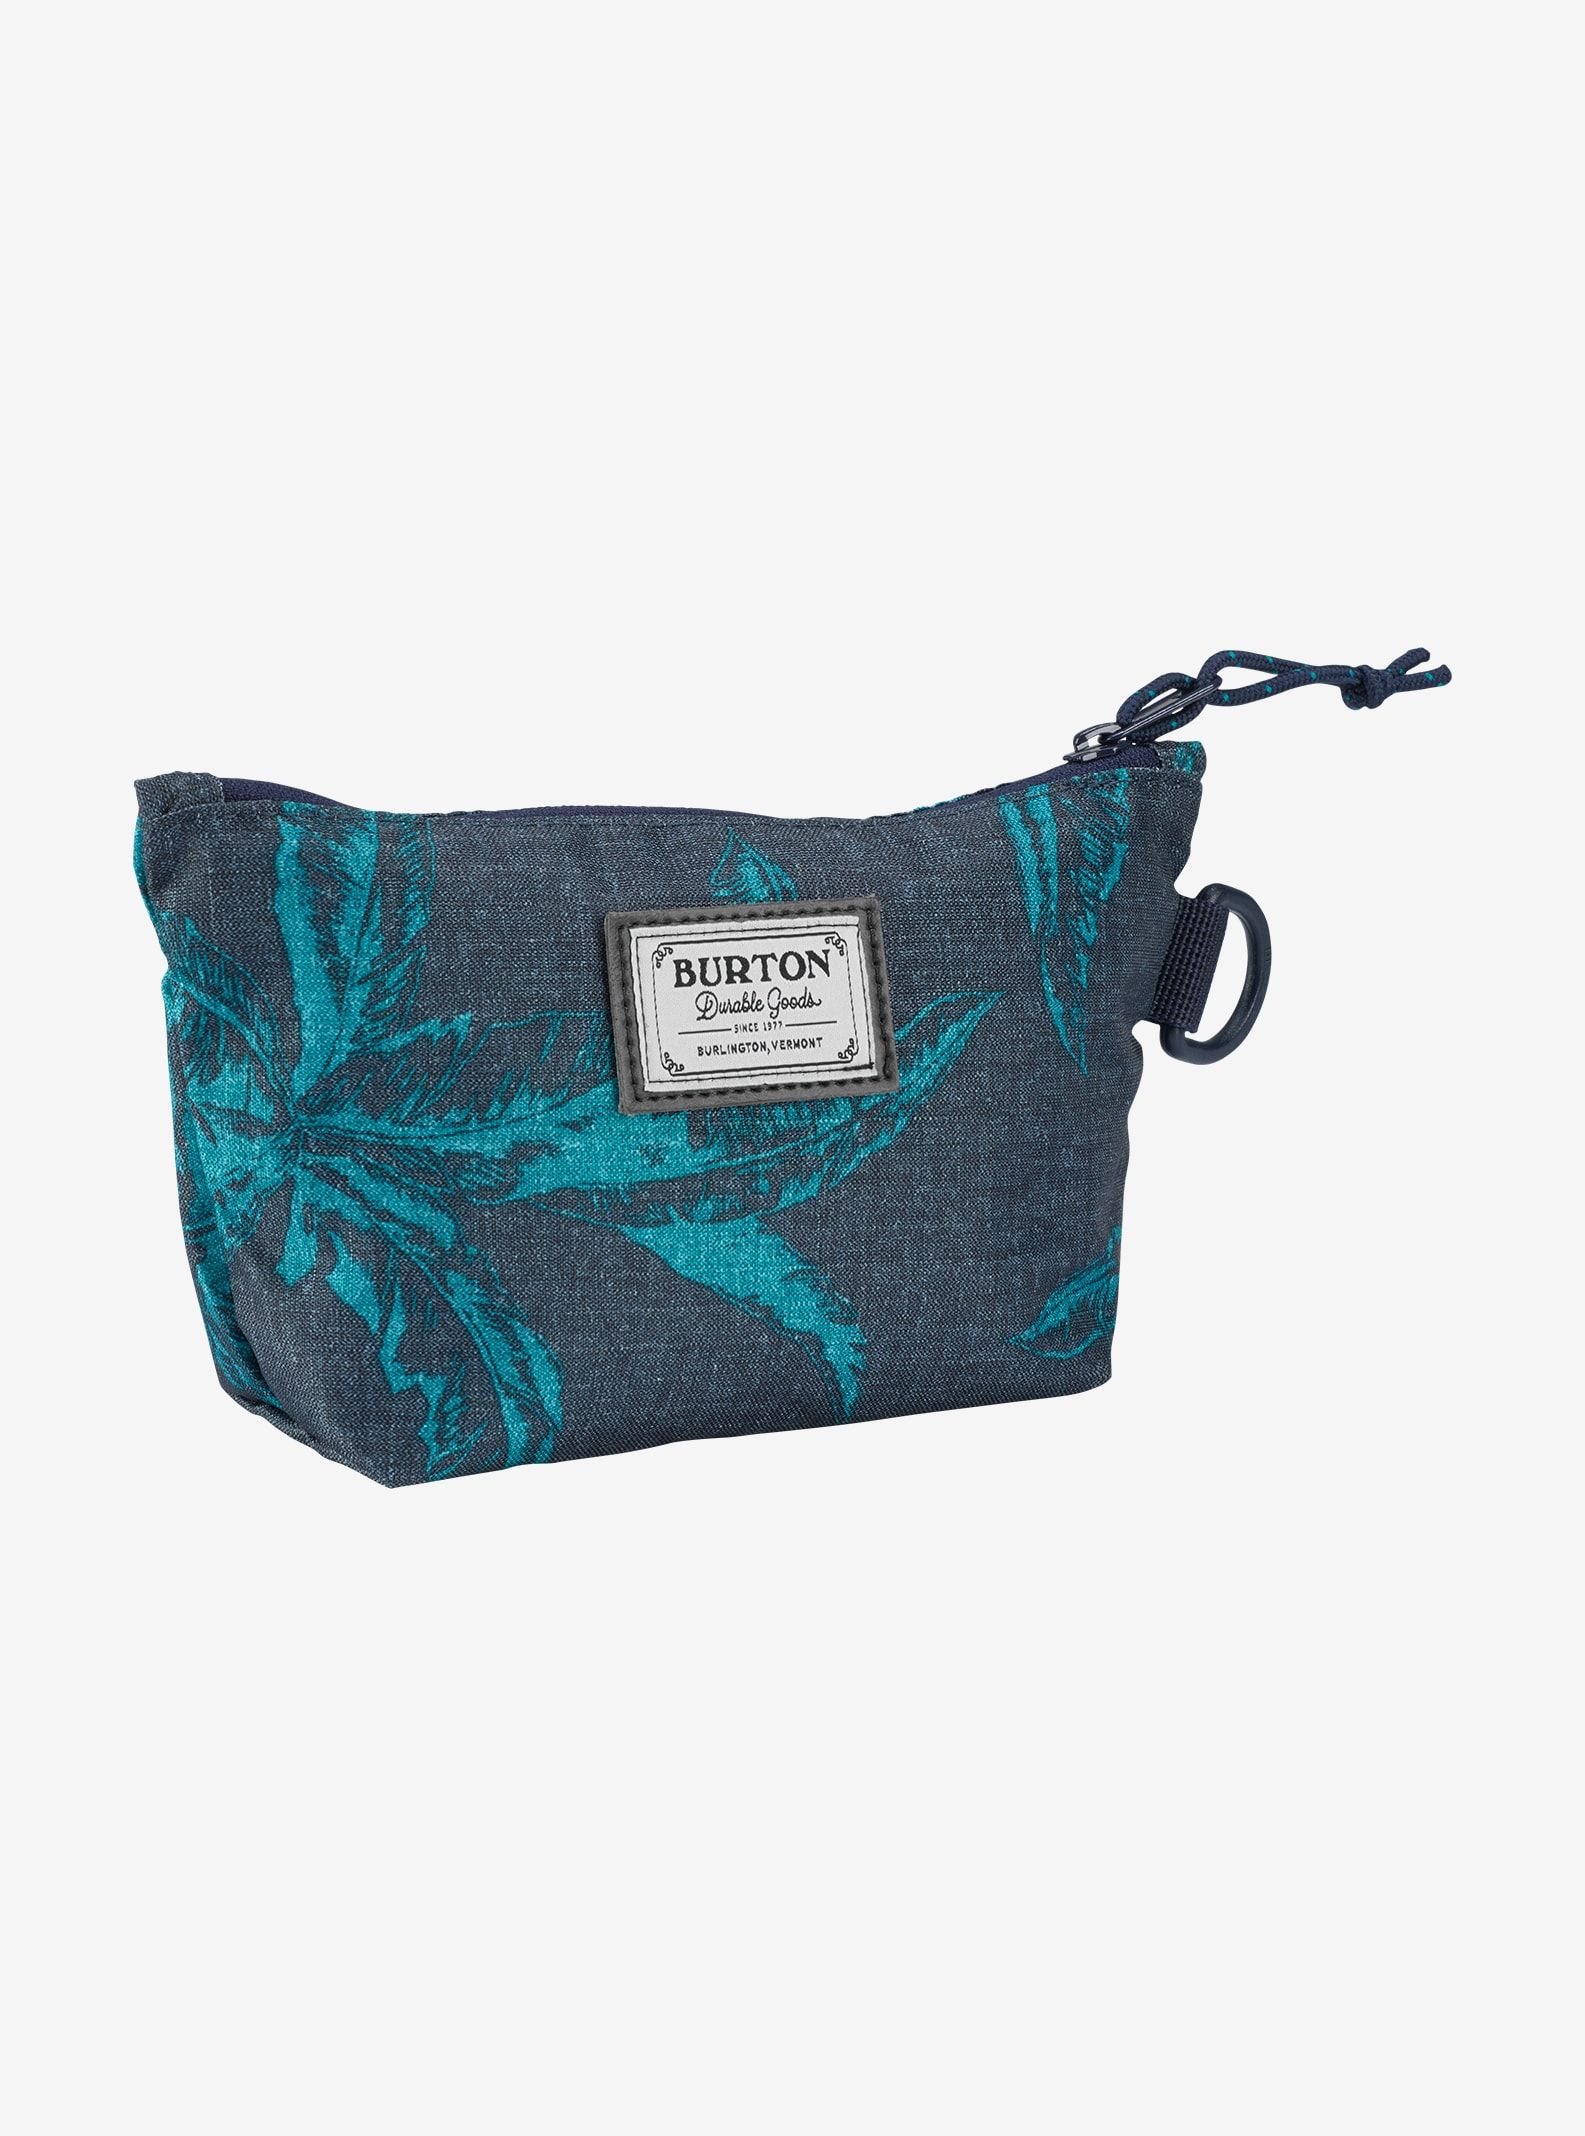 Burton Utility Pouch Small shown in Tropical Print